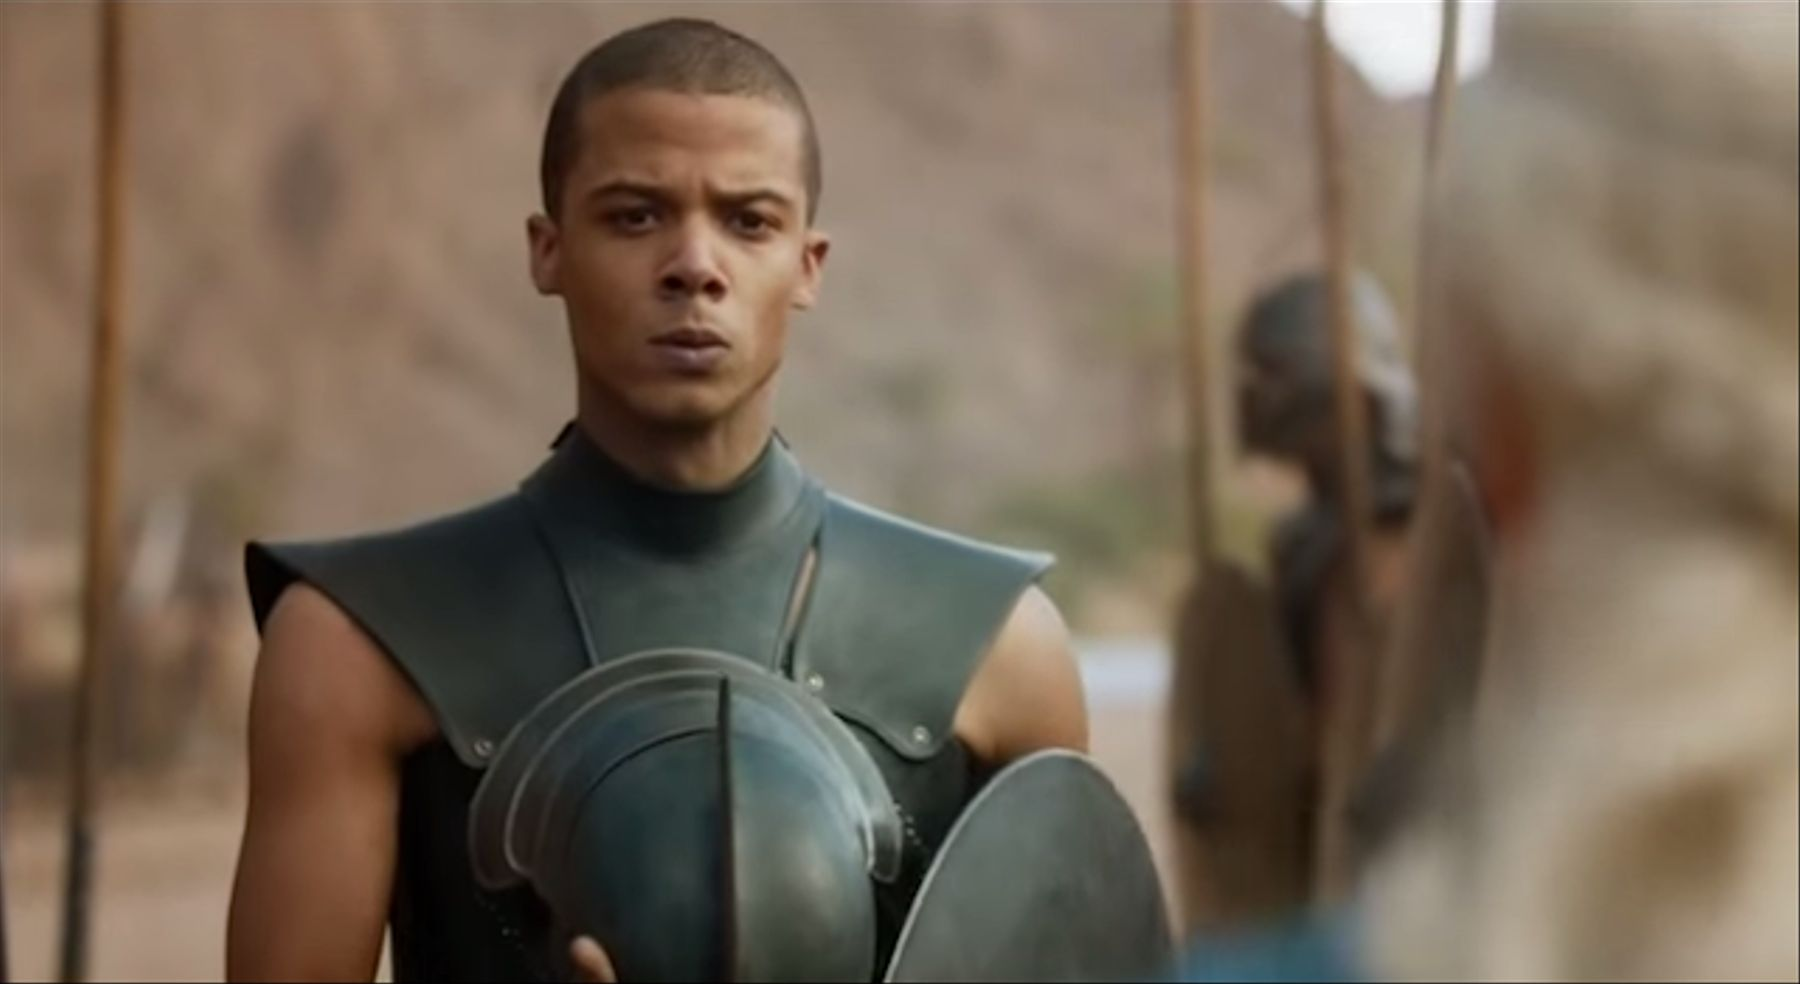 [Image: greyworm.png?quality=0.8&format=jpg&width=1800]